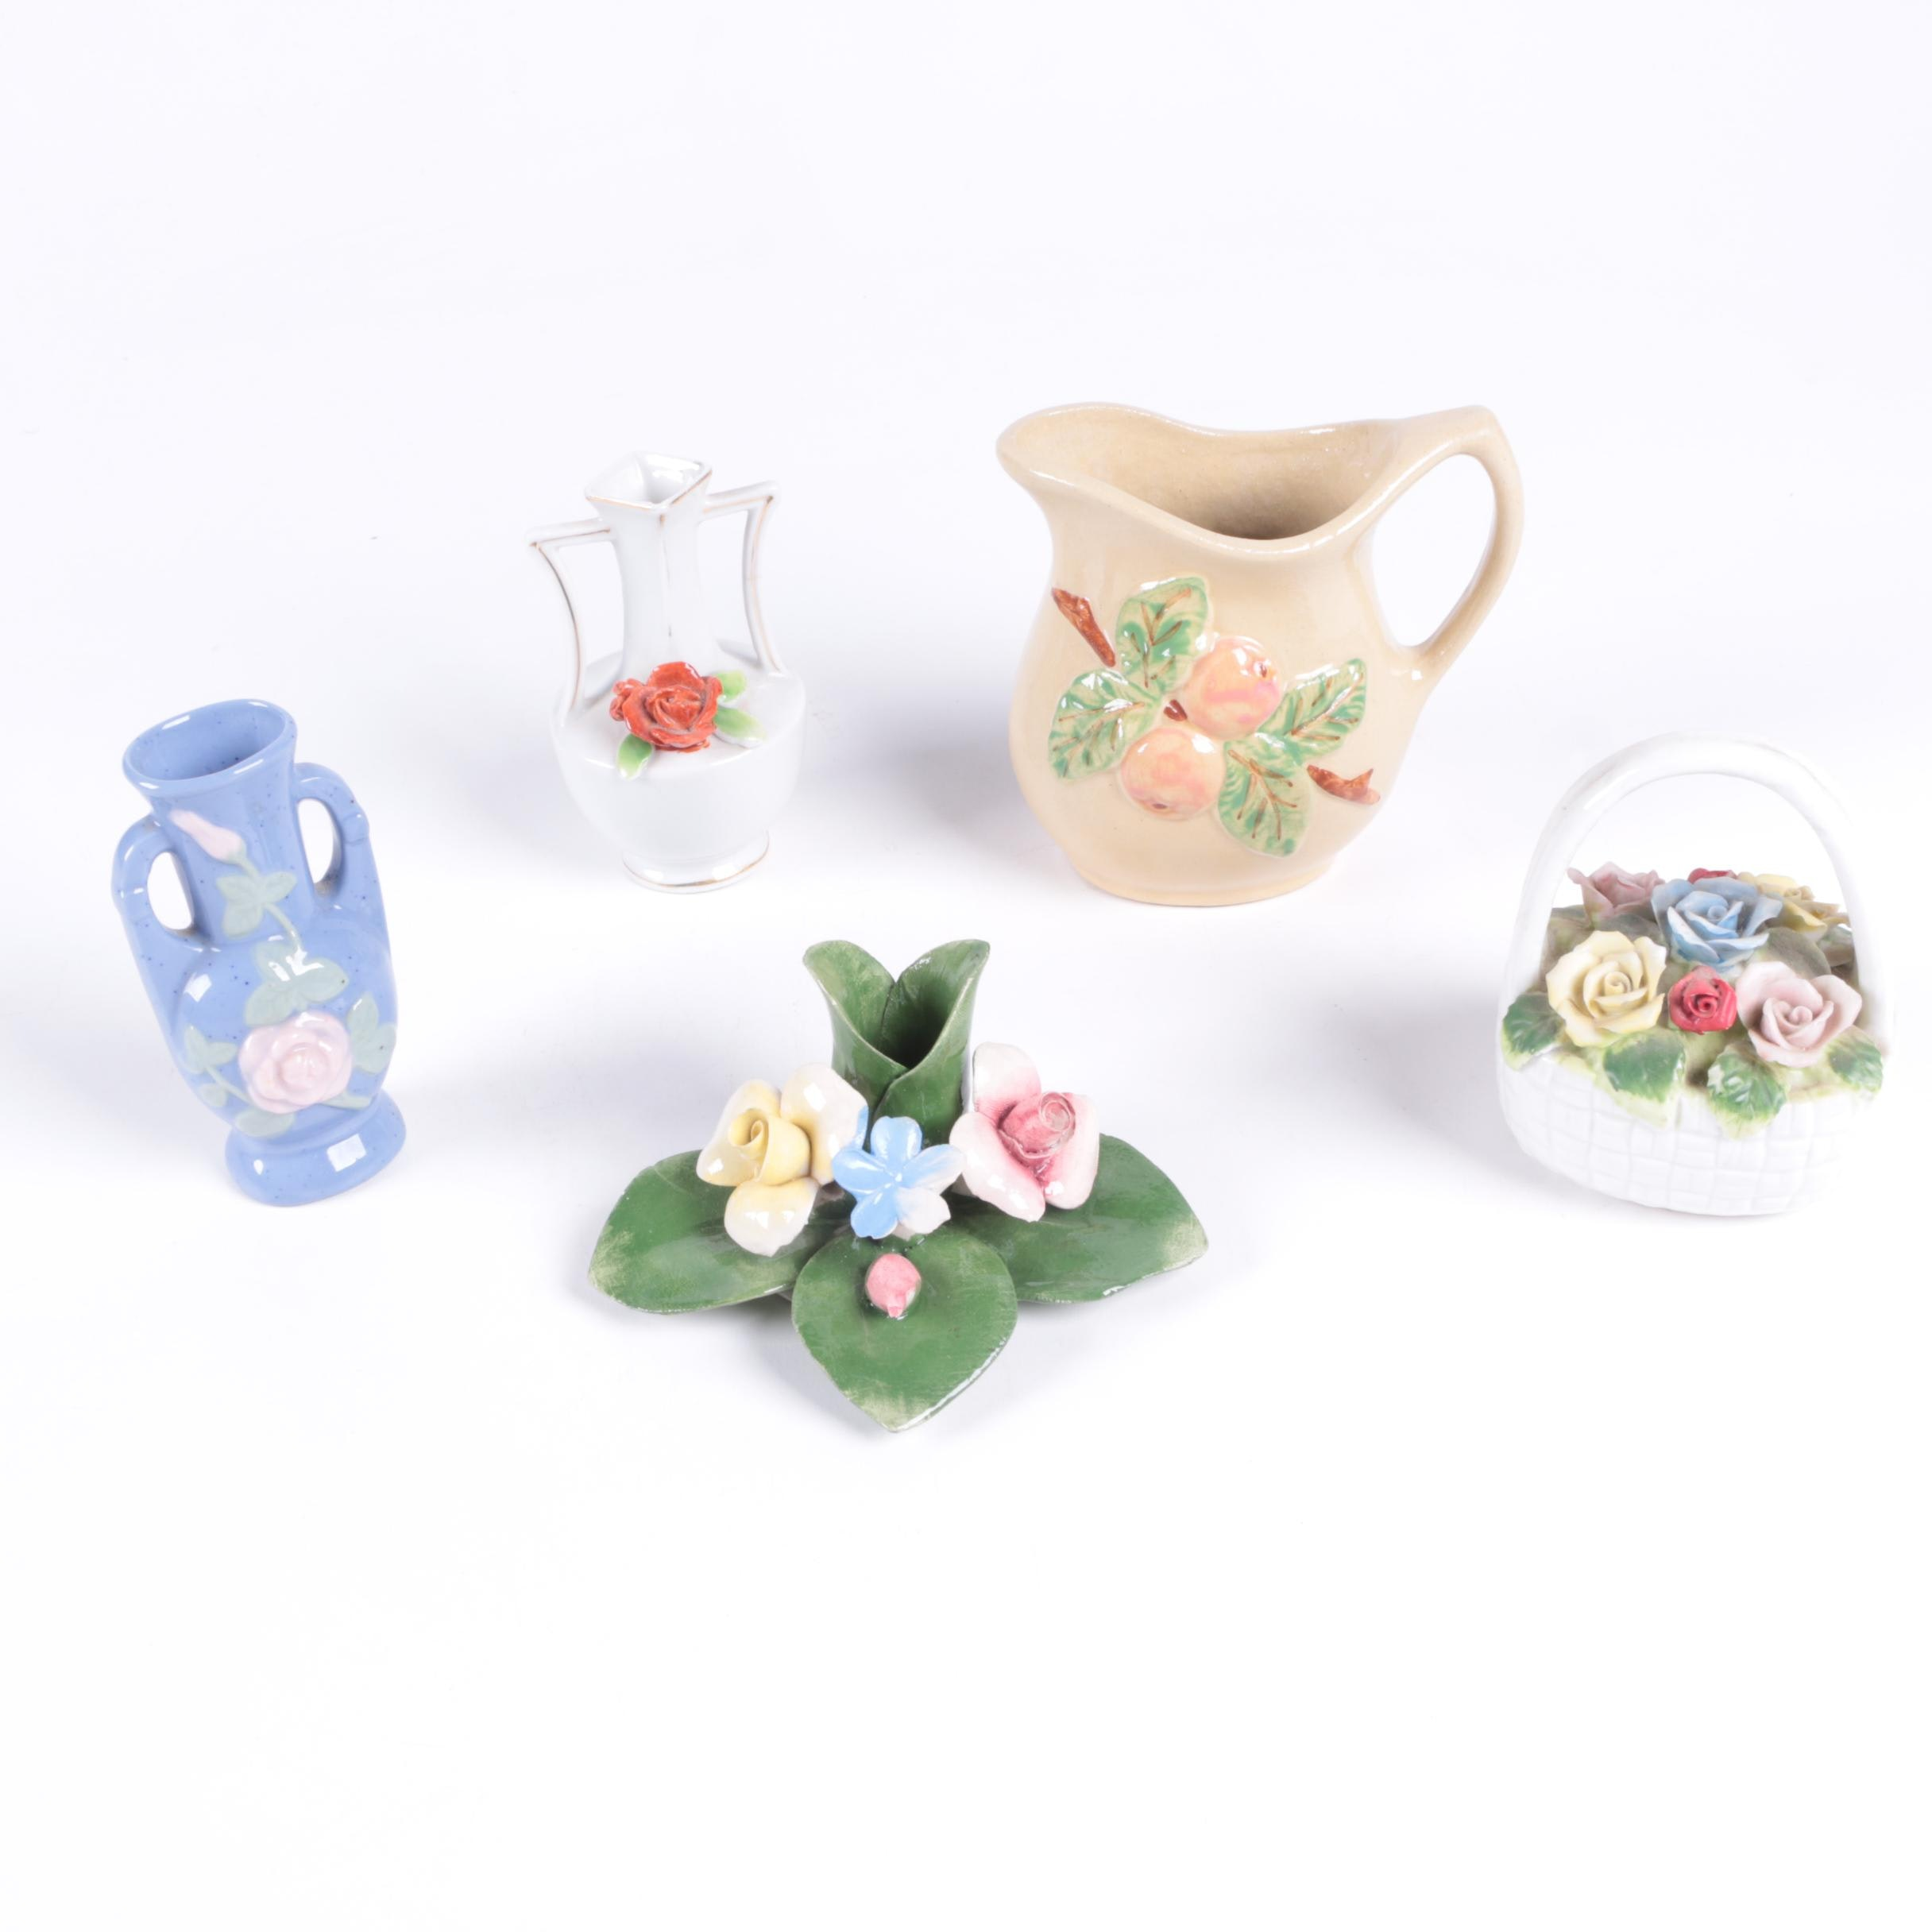 Floral Themed Vases and Decor including Occupied Japan